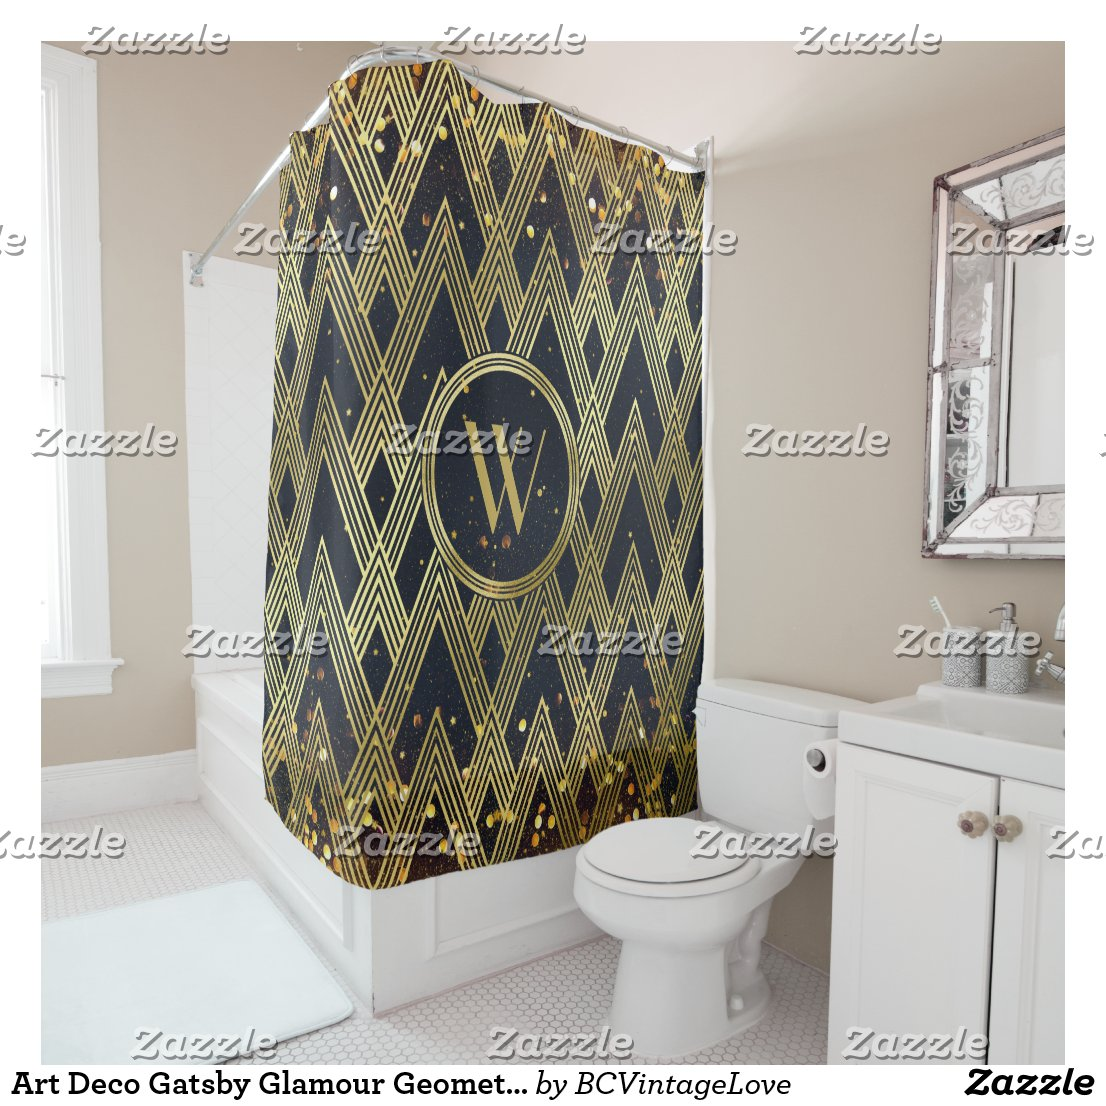 Art Deco Gatsby Glamour Geometric Pattern Monogram Shower Curtain